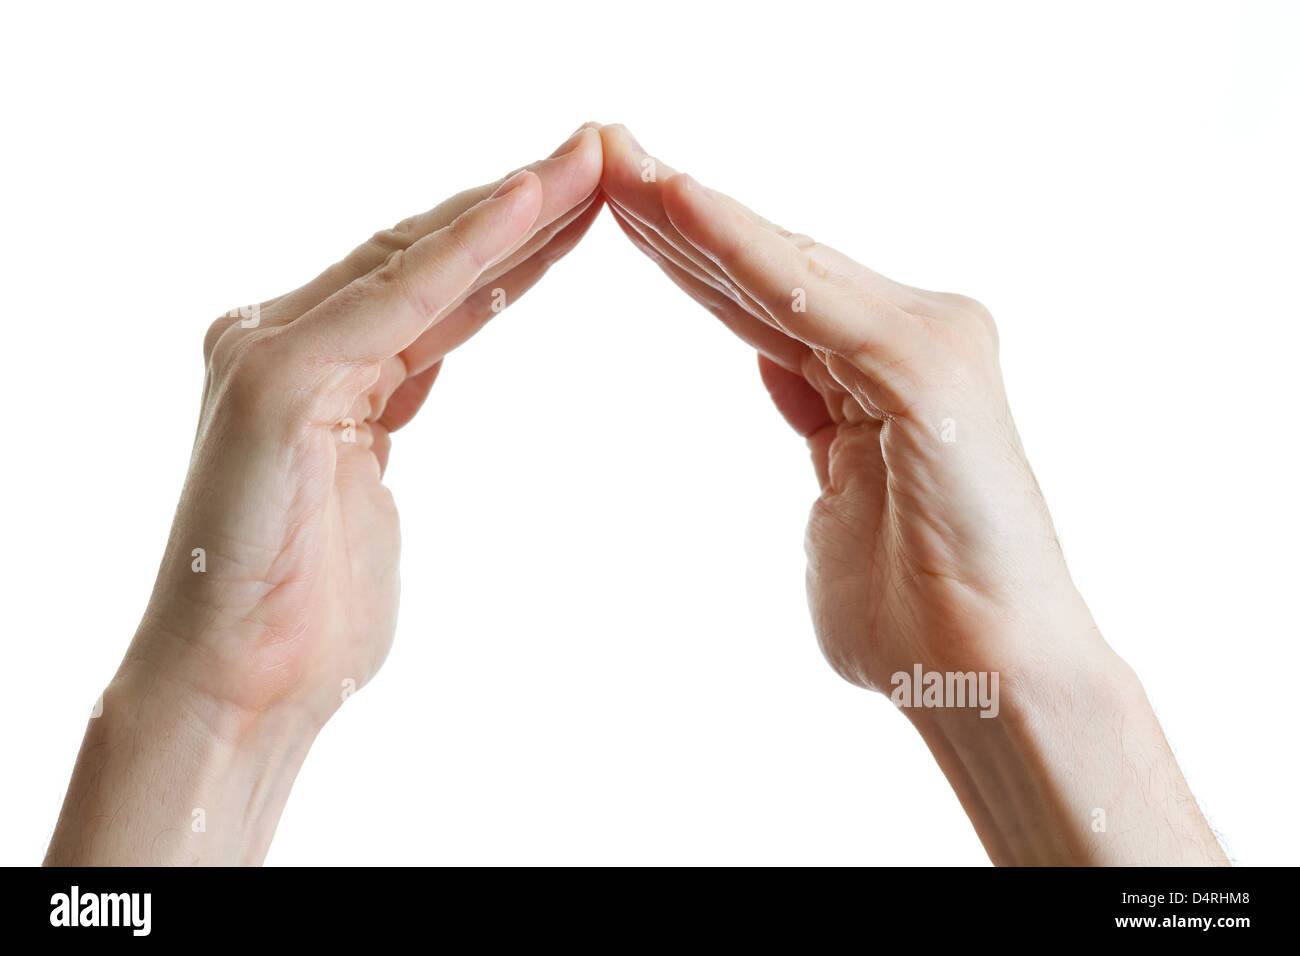 hands in the shape of house on white background - Stock Image